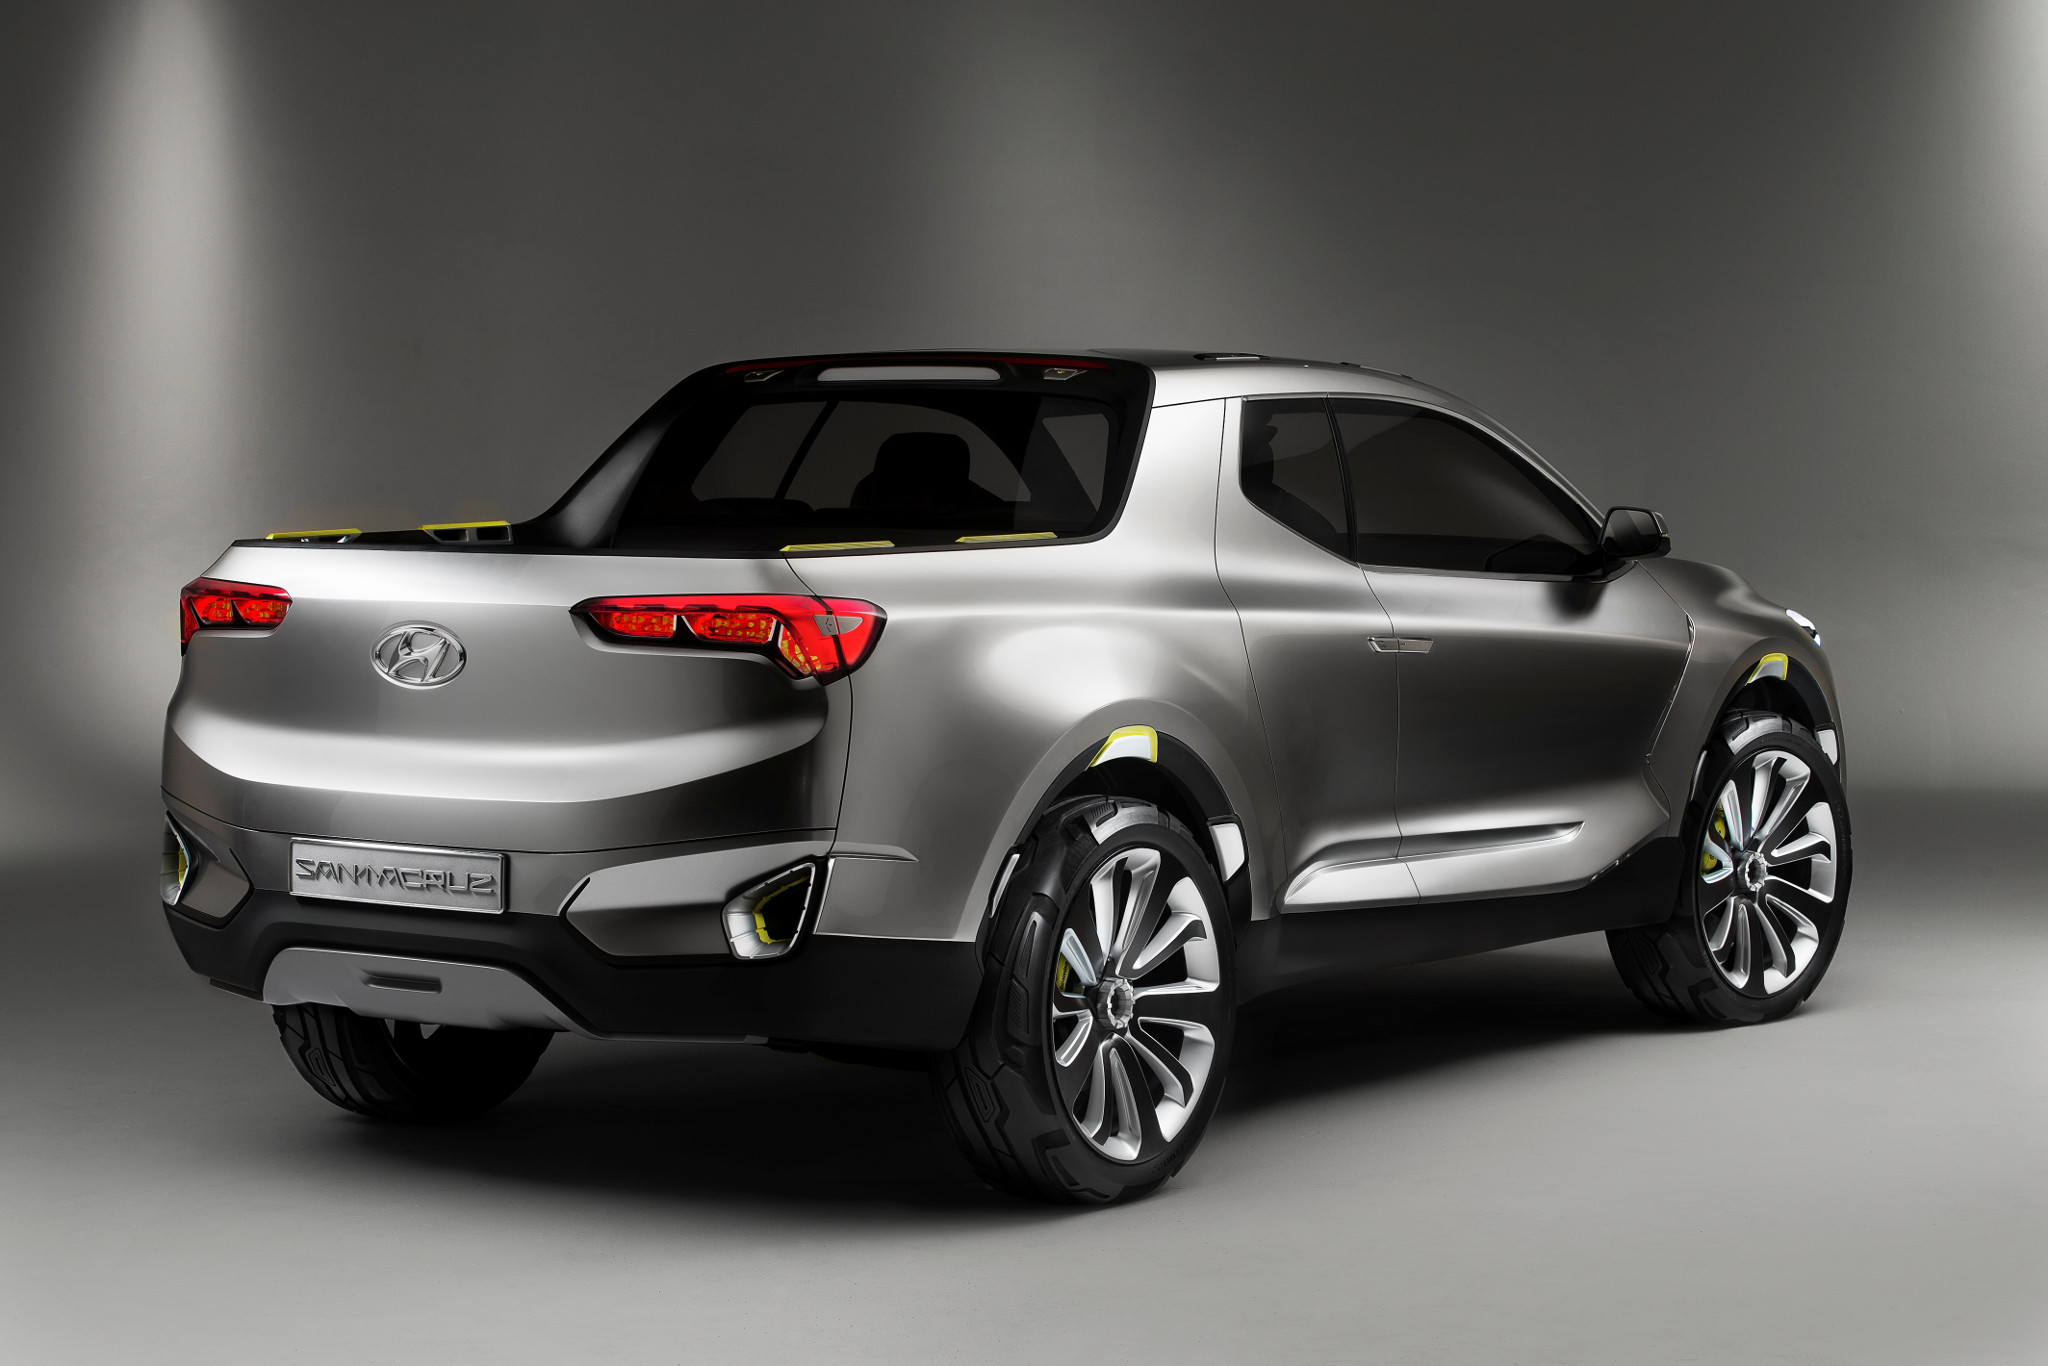 All the Pickup Truck News: Hyundai Santa Cruz Cruises In, Tesla Cybertruck Approaches and More